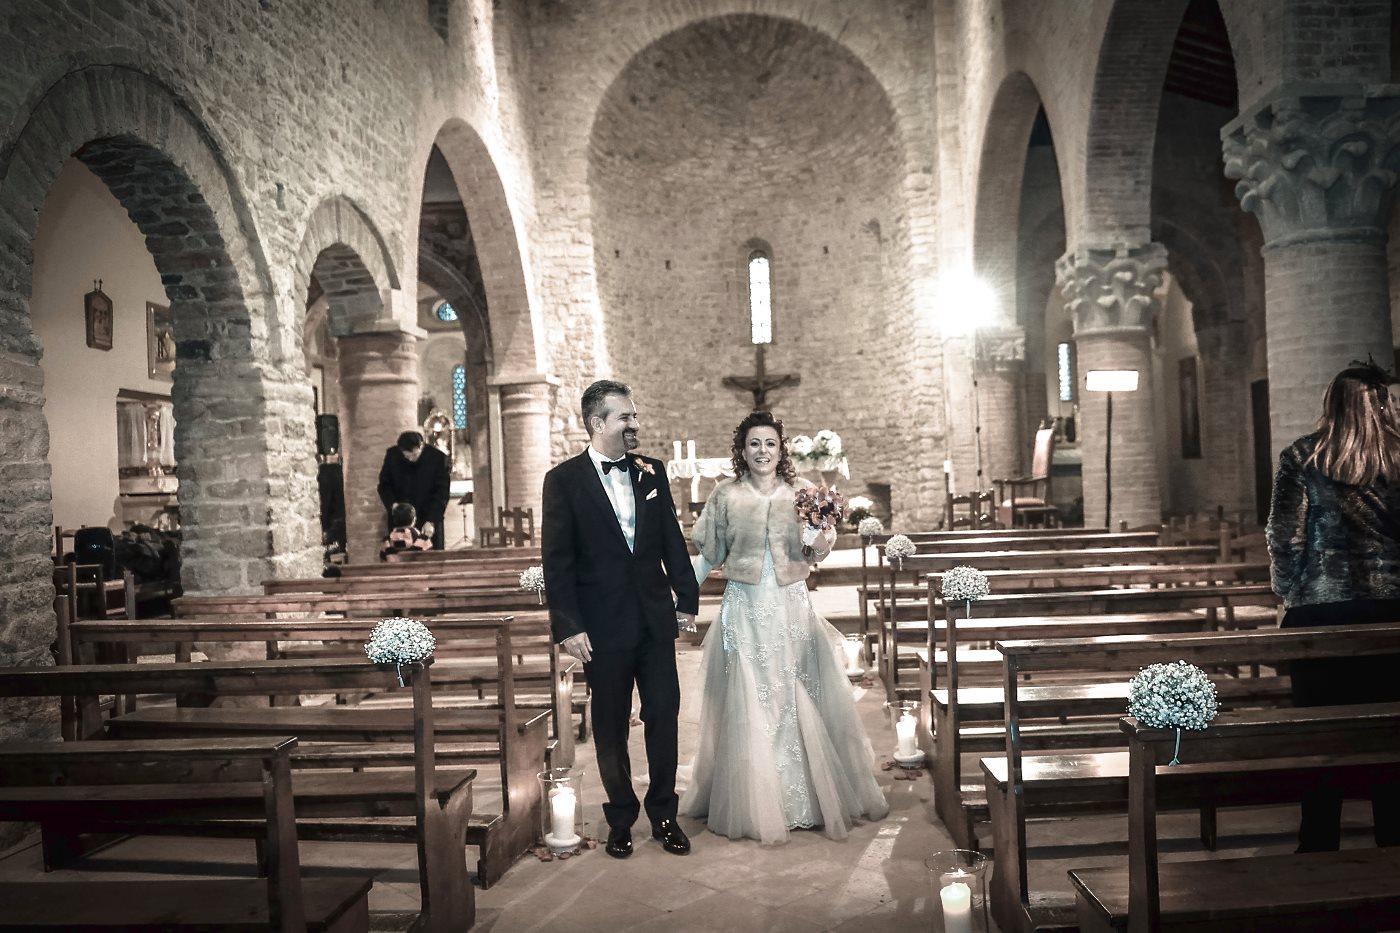 wedding photos in tuscany_18.jpg